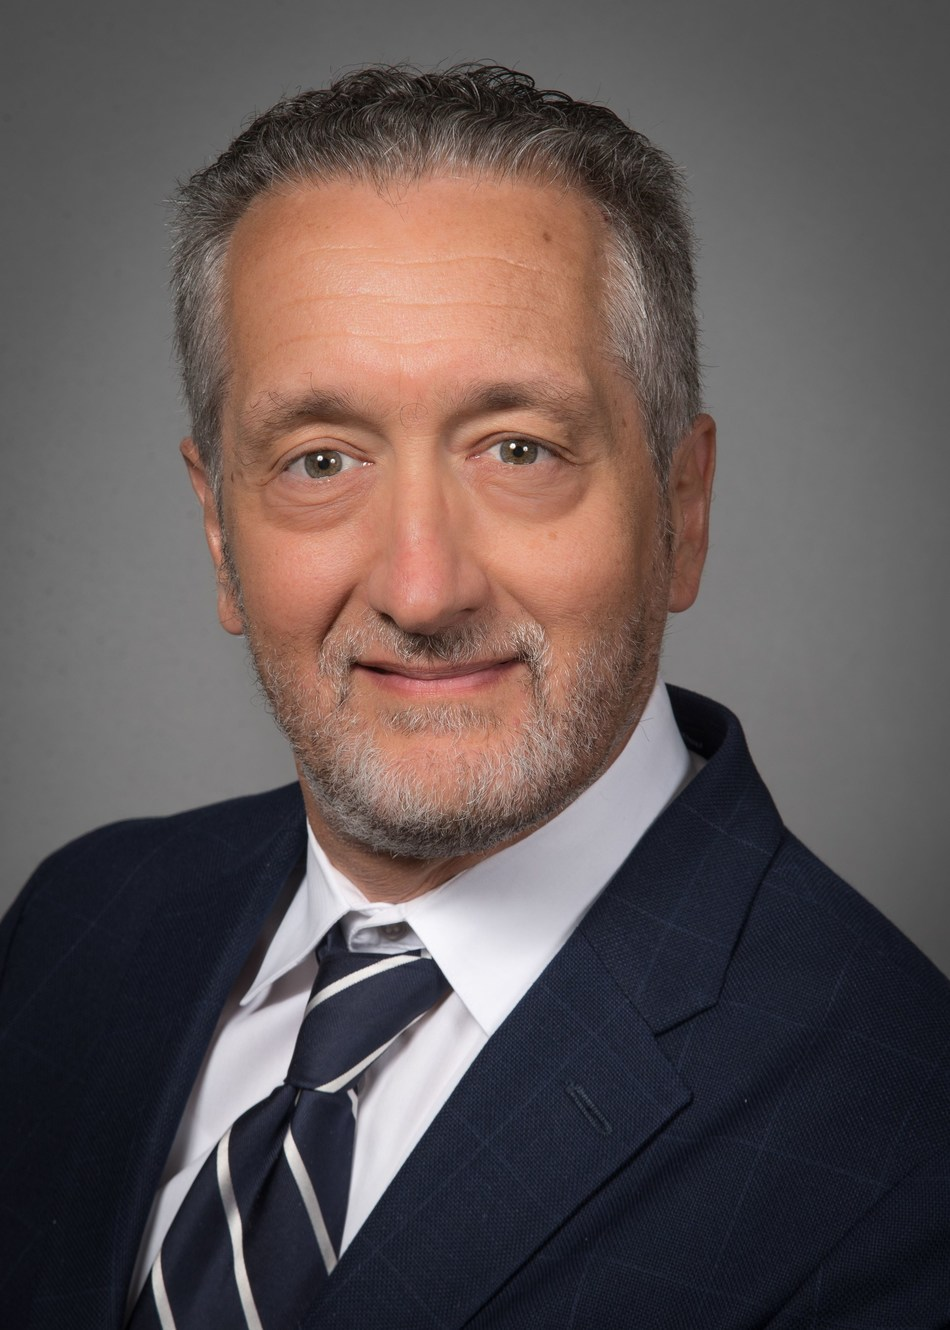 Ruben Itamar Kuzniecky, MD, lead investigator, Feinstein Institute member and director of Research & Clinical Trials in the Department of Neurology at Lenox Hill Hospital